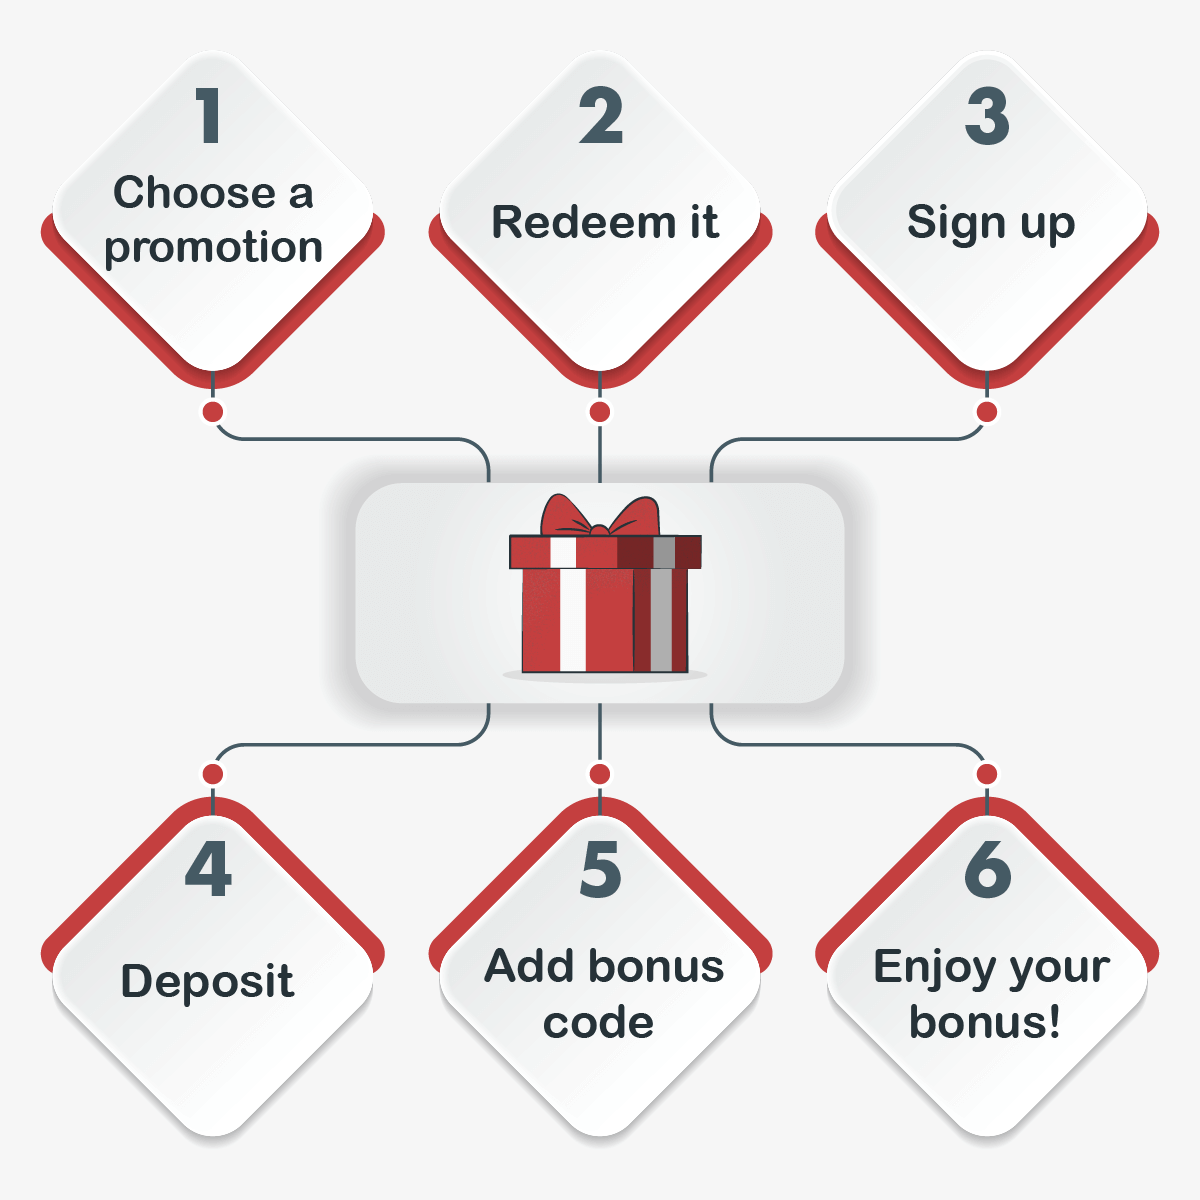 How to use a first deposit bonus step-by-step